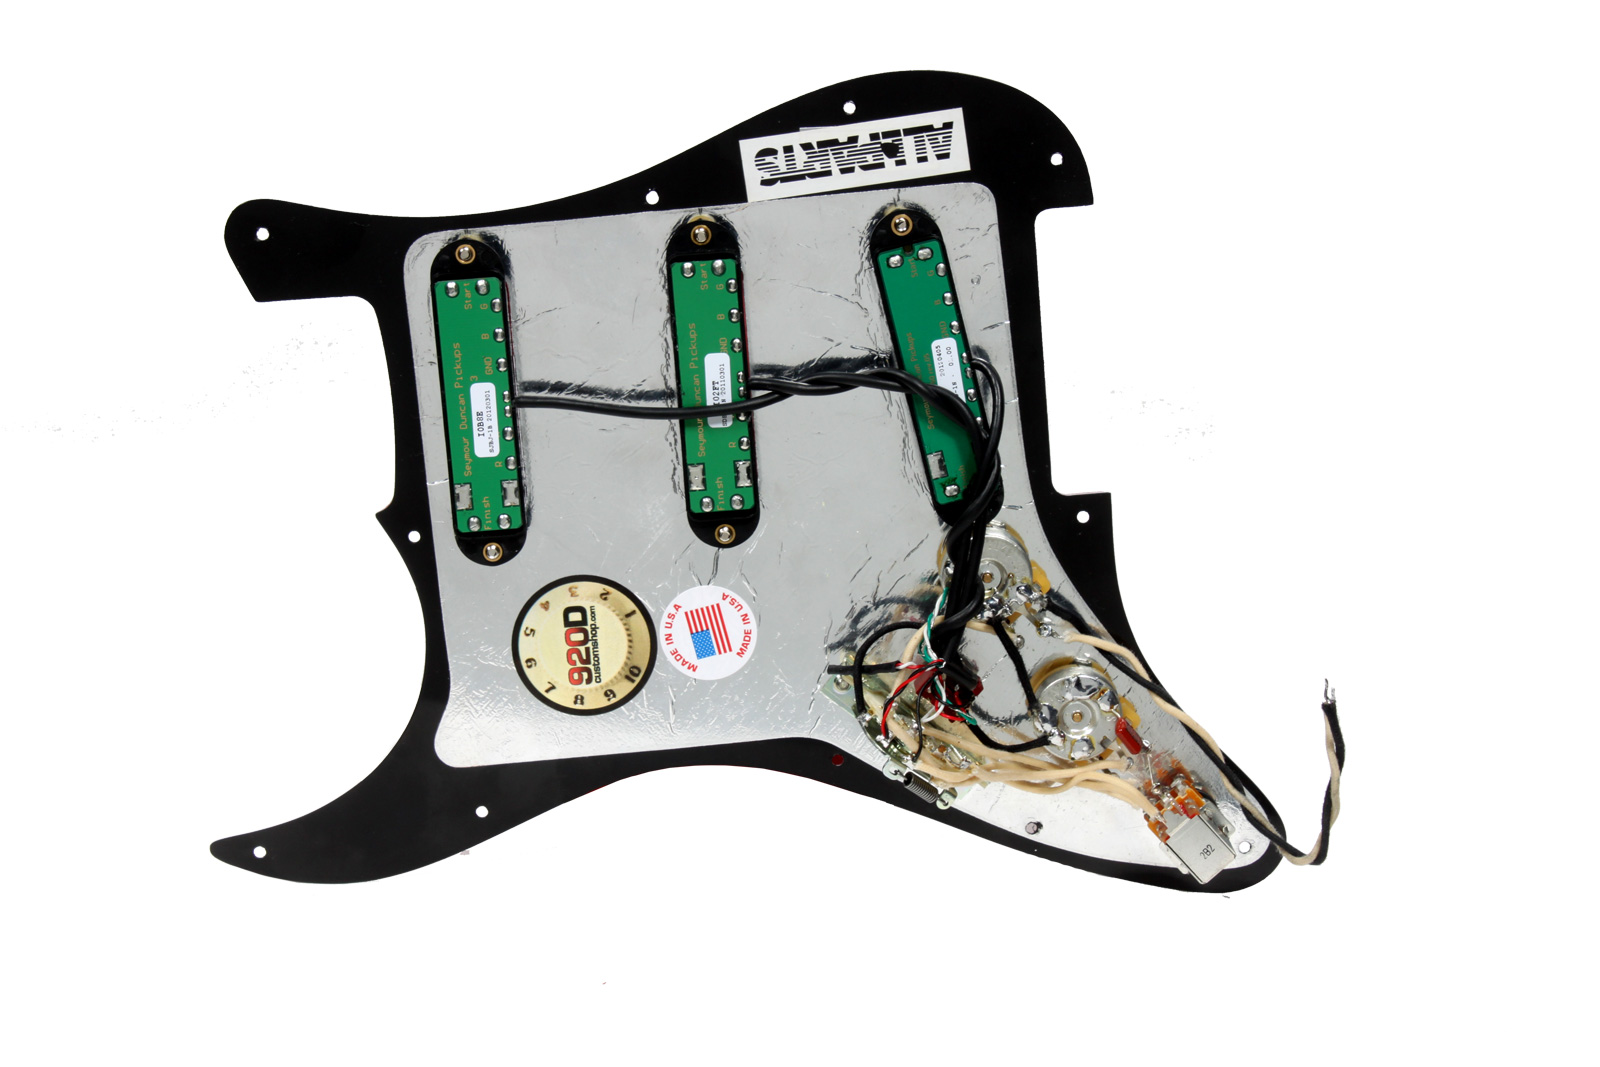 seymour duncan everything axe loaded strat pickguard w. Black Bedroom Furniture Sets. Home Design Ideas